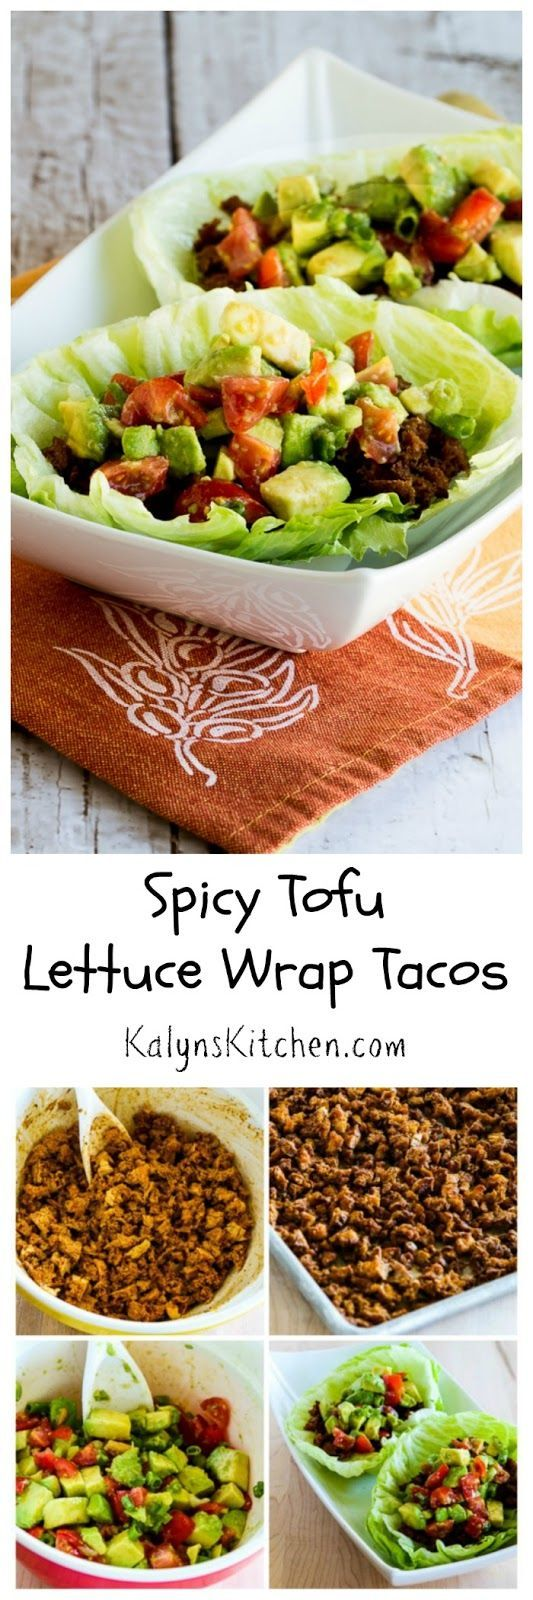 Spicy Tofu Lettuce Wrap Tacos are easy and delicious! (Low-Carb, Vegan, Gluten-Free) [from KalynsKitchen.com]